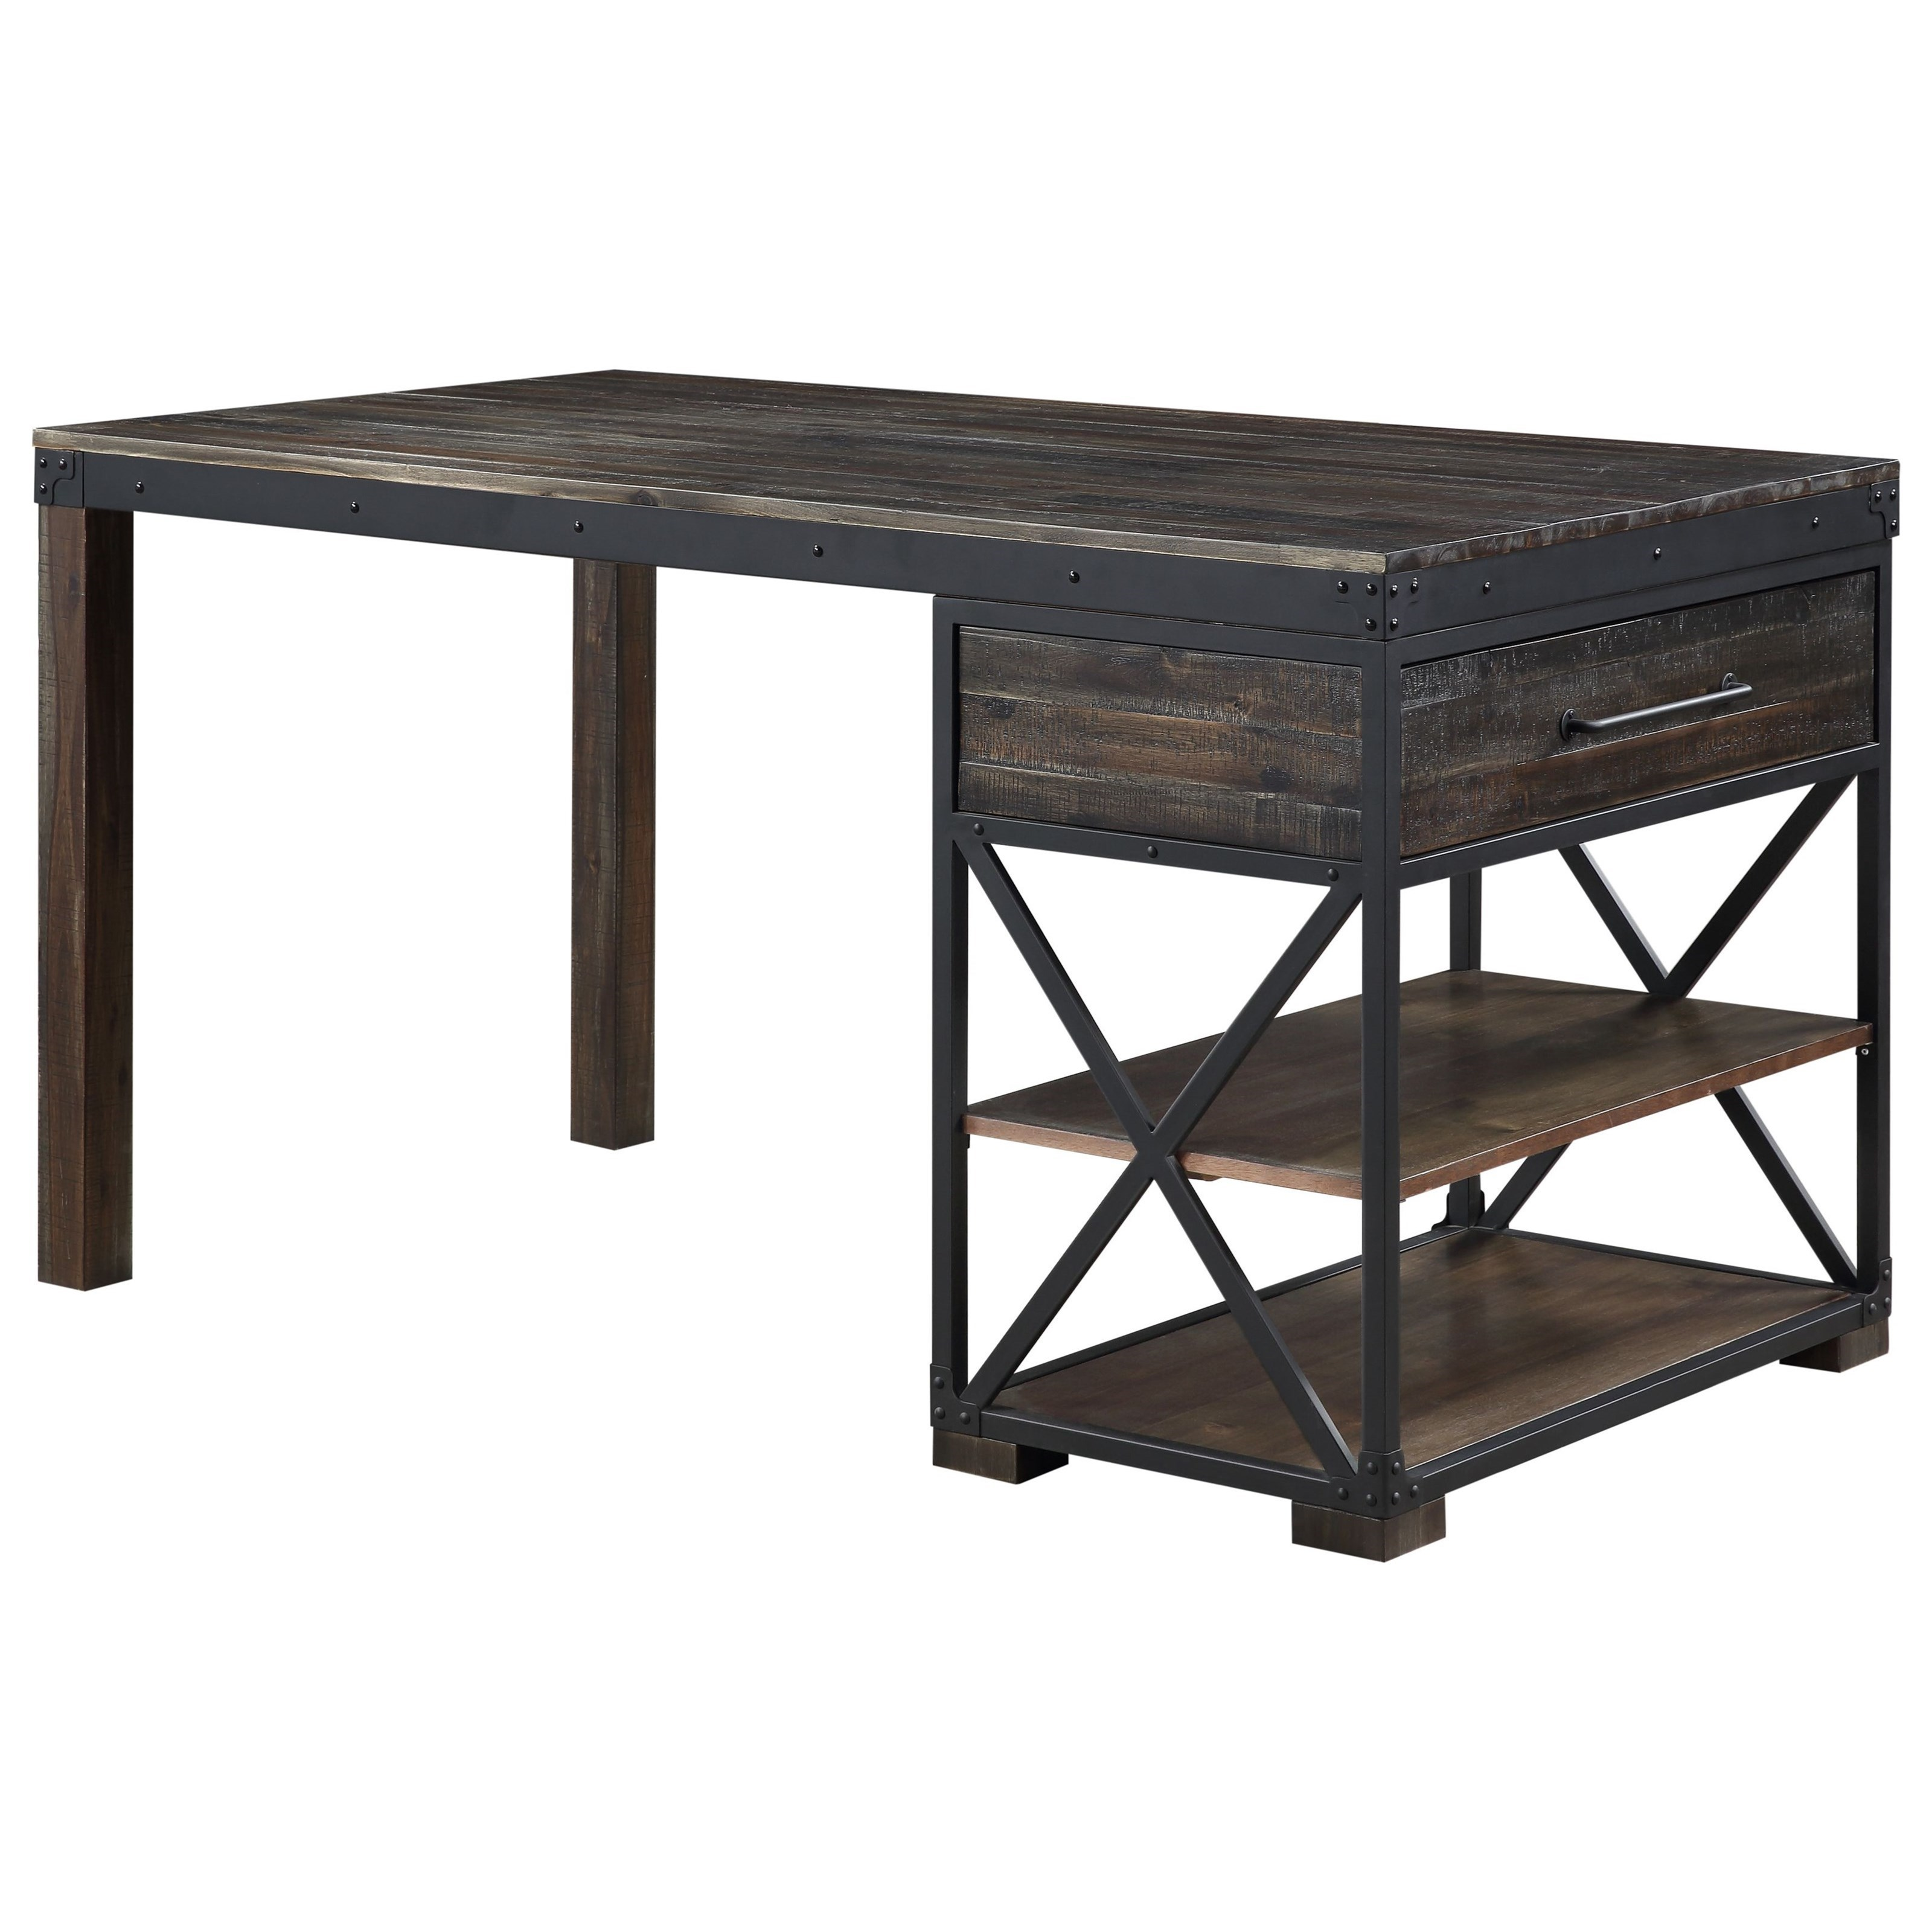 Canyon Ridge Counter Dining Table by Coast to Coast Imports at Baer's Furniture